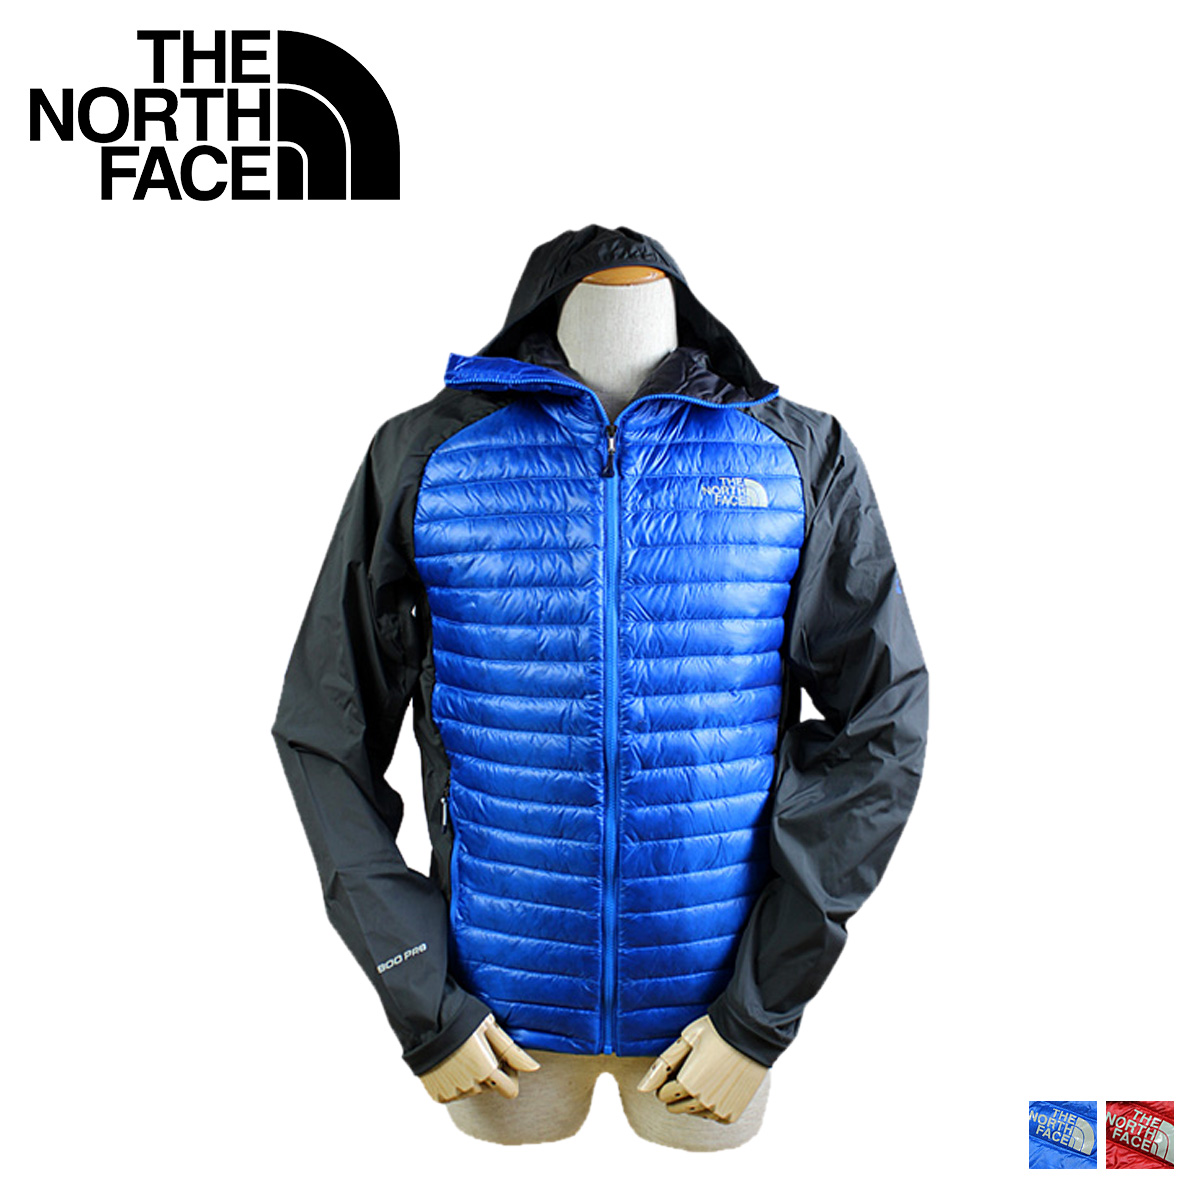 0c55bb953c97 THE NORTH FACE / ☆ HOODIE MEN's VERTO MICRO ☆ Nylon jacket / STYLE: A2V4